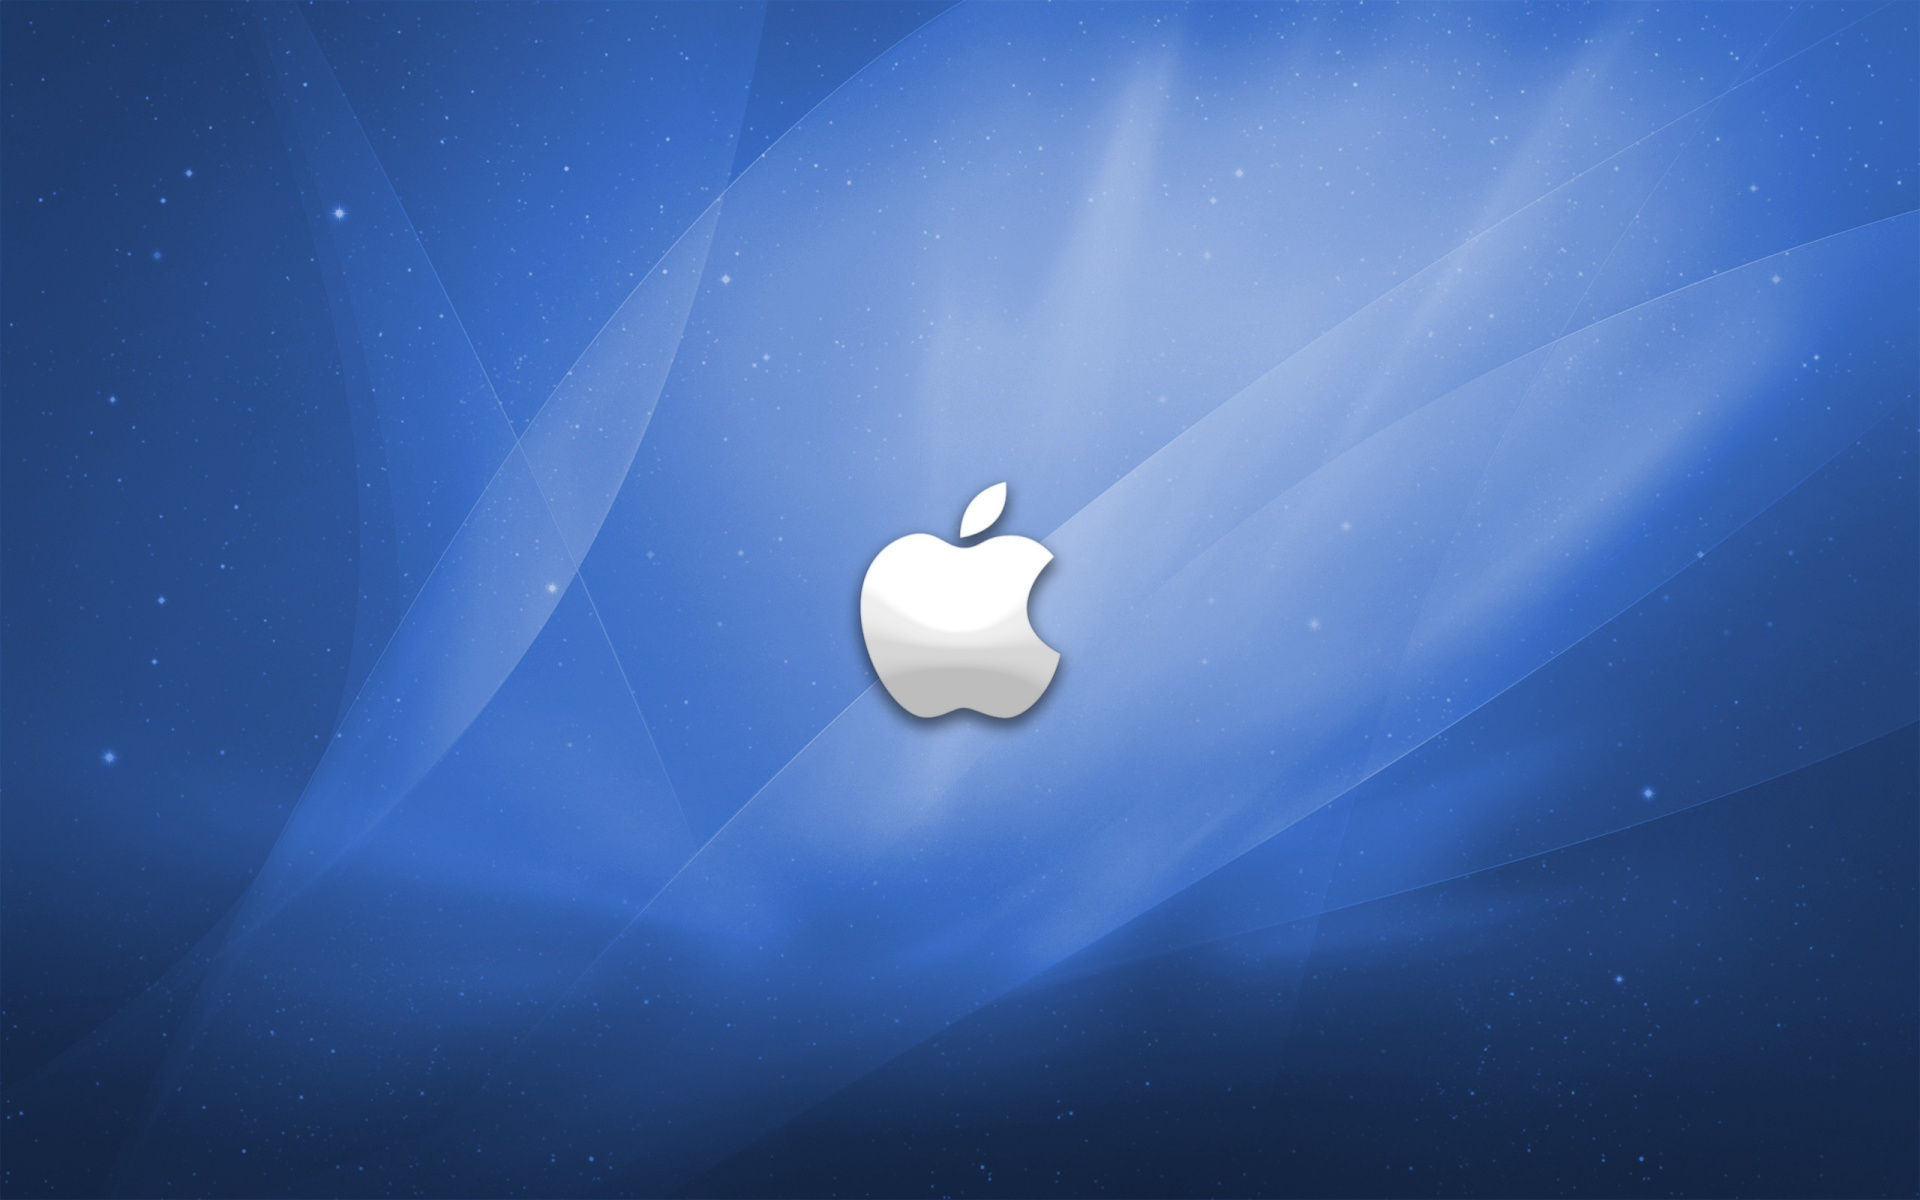 Another Apple background 1920x1200